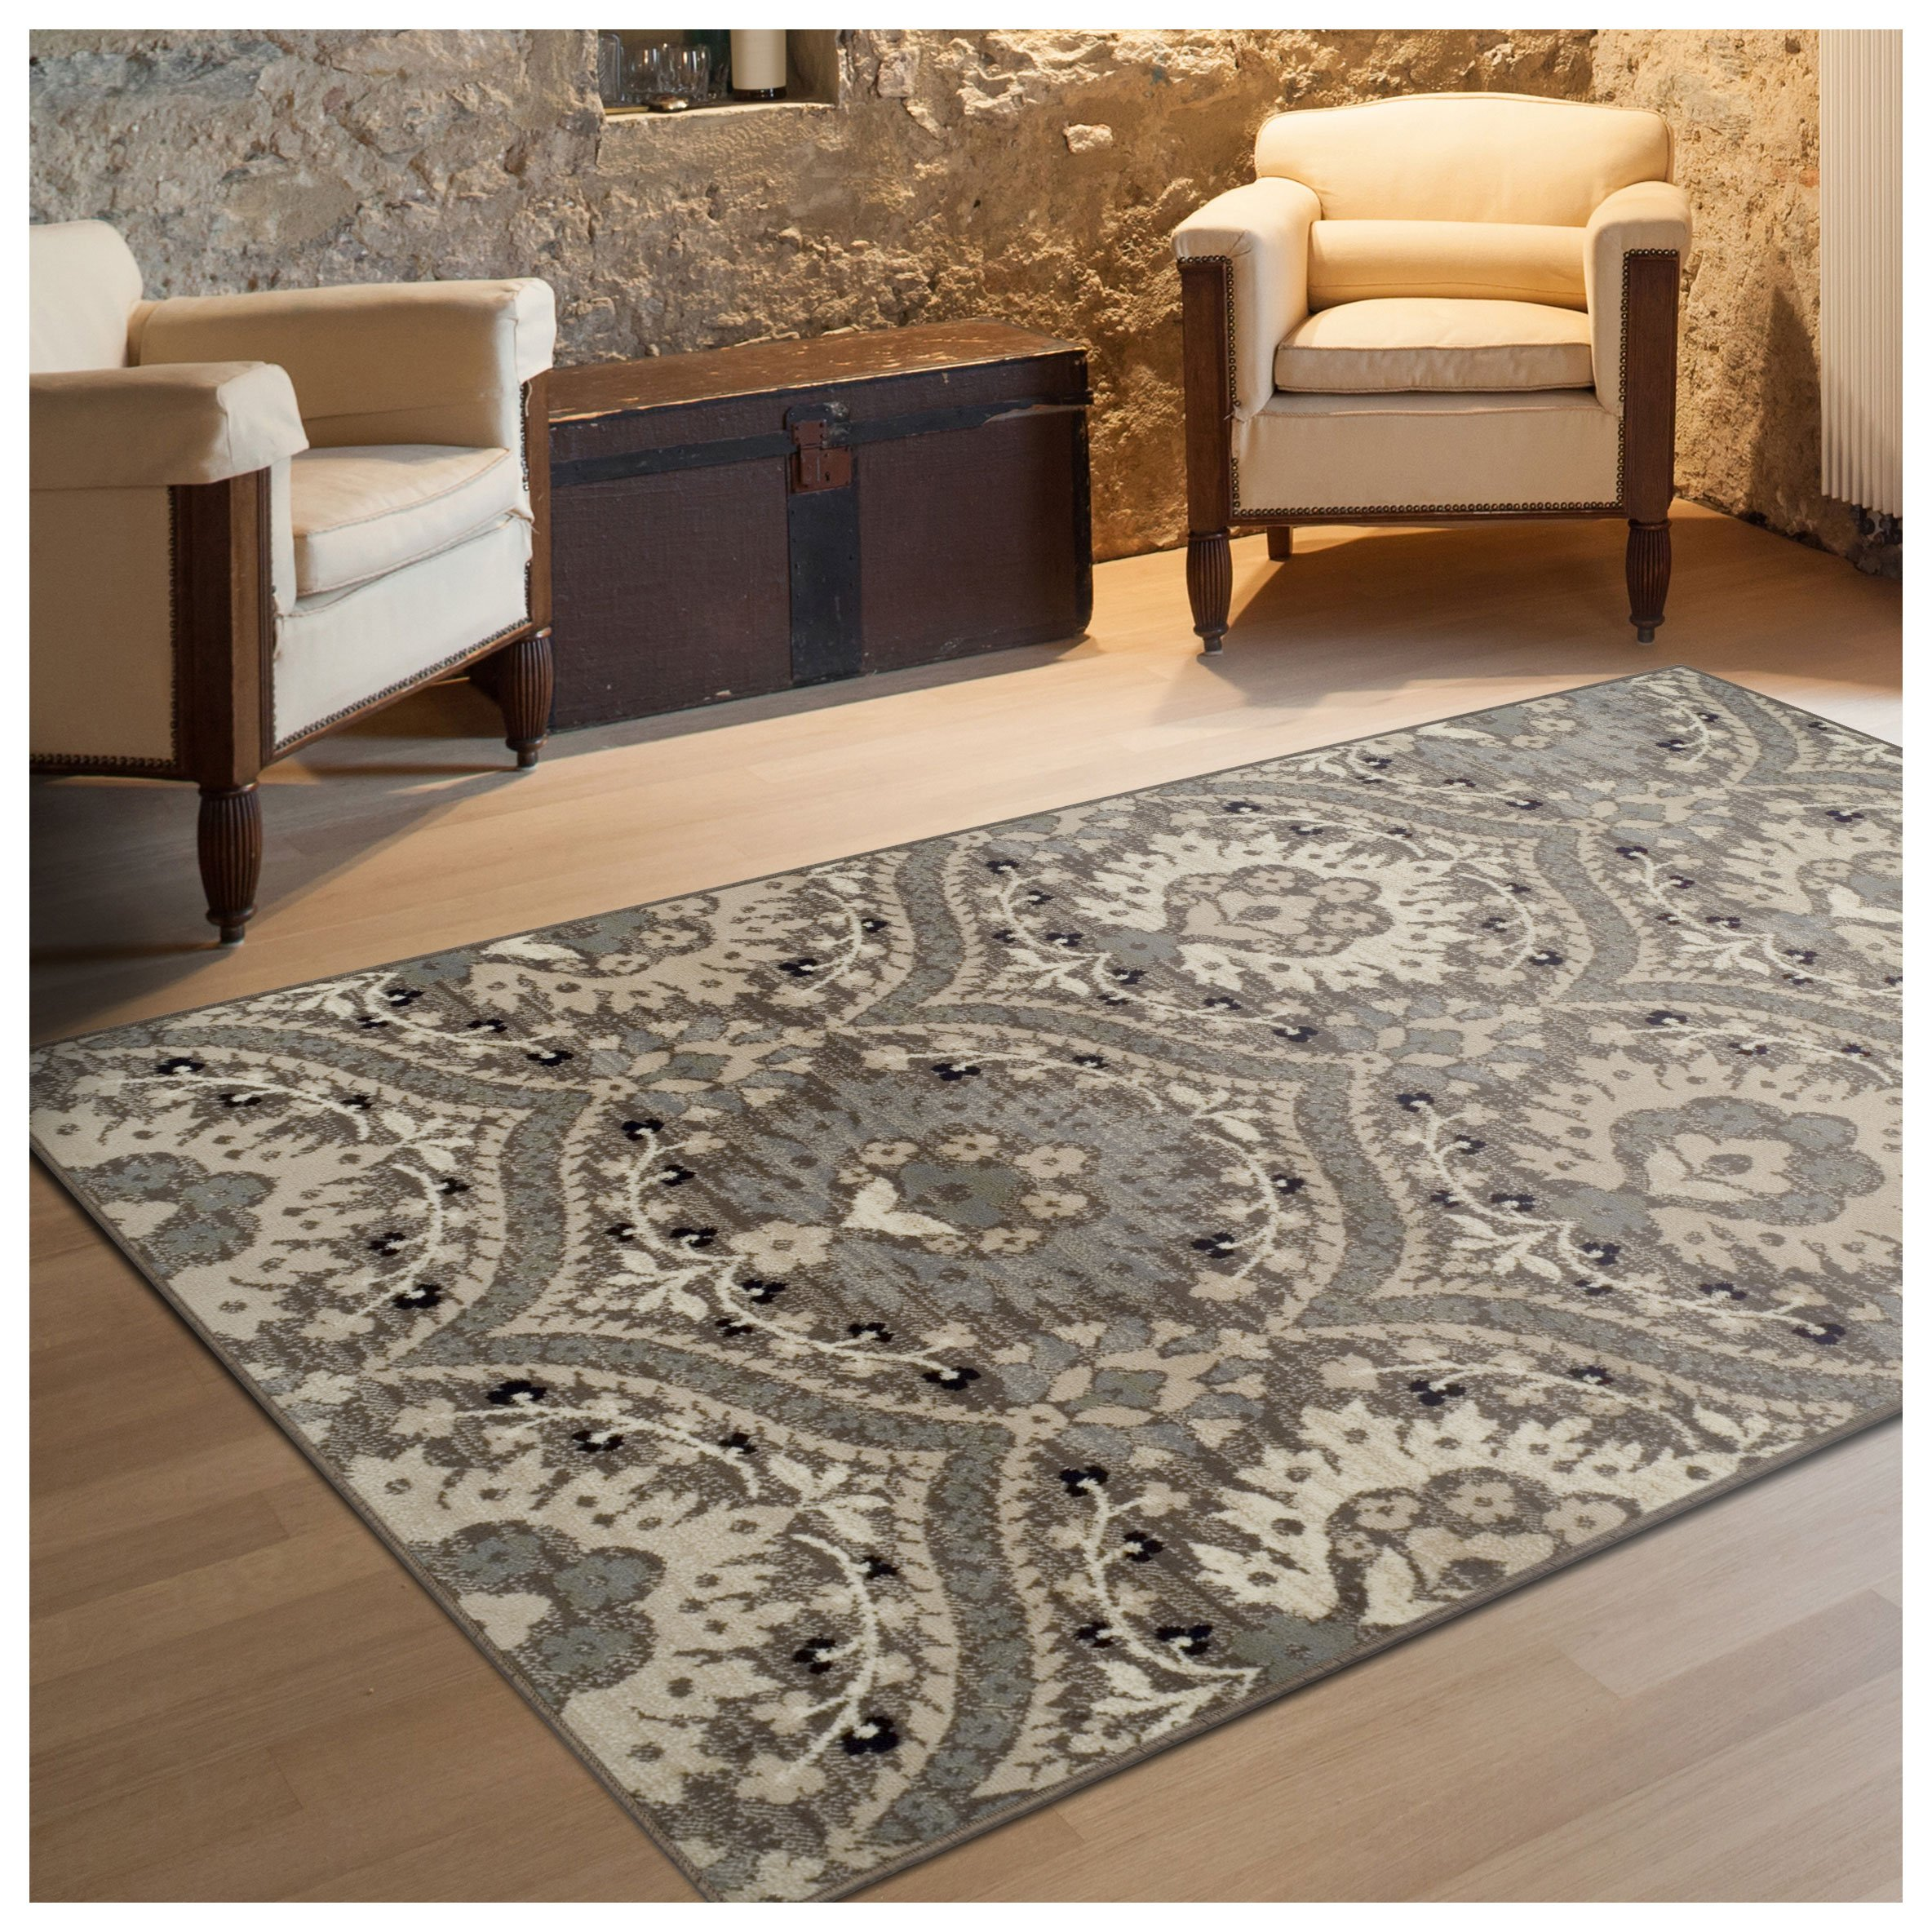 Superior Designer Augusta Collection Area Rug, 8mm Pile Height with Jute Backing, Beautiful Floral Scalloped Pattern, Anti-Static, Water-Repellent Rugs - Light Blue, 8' x 10' Rug